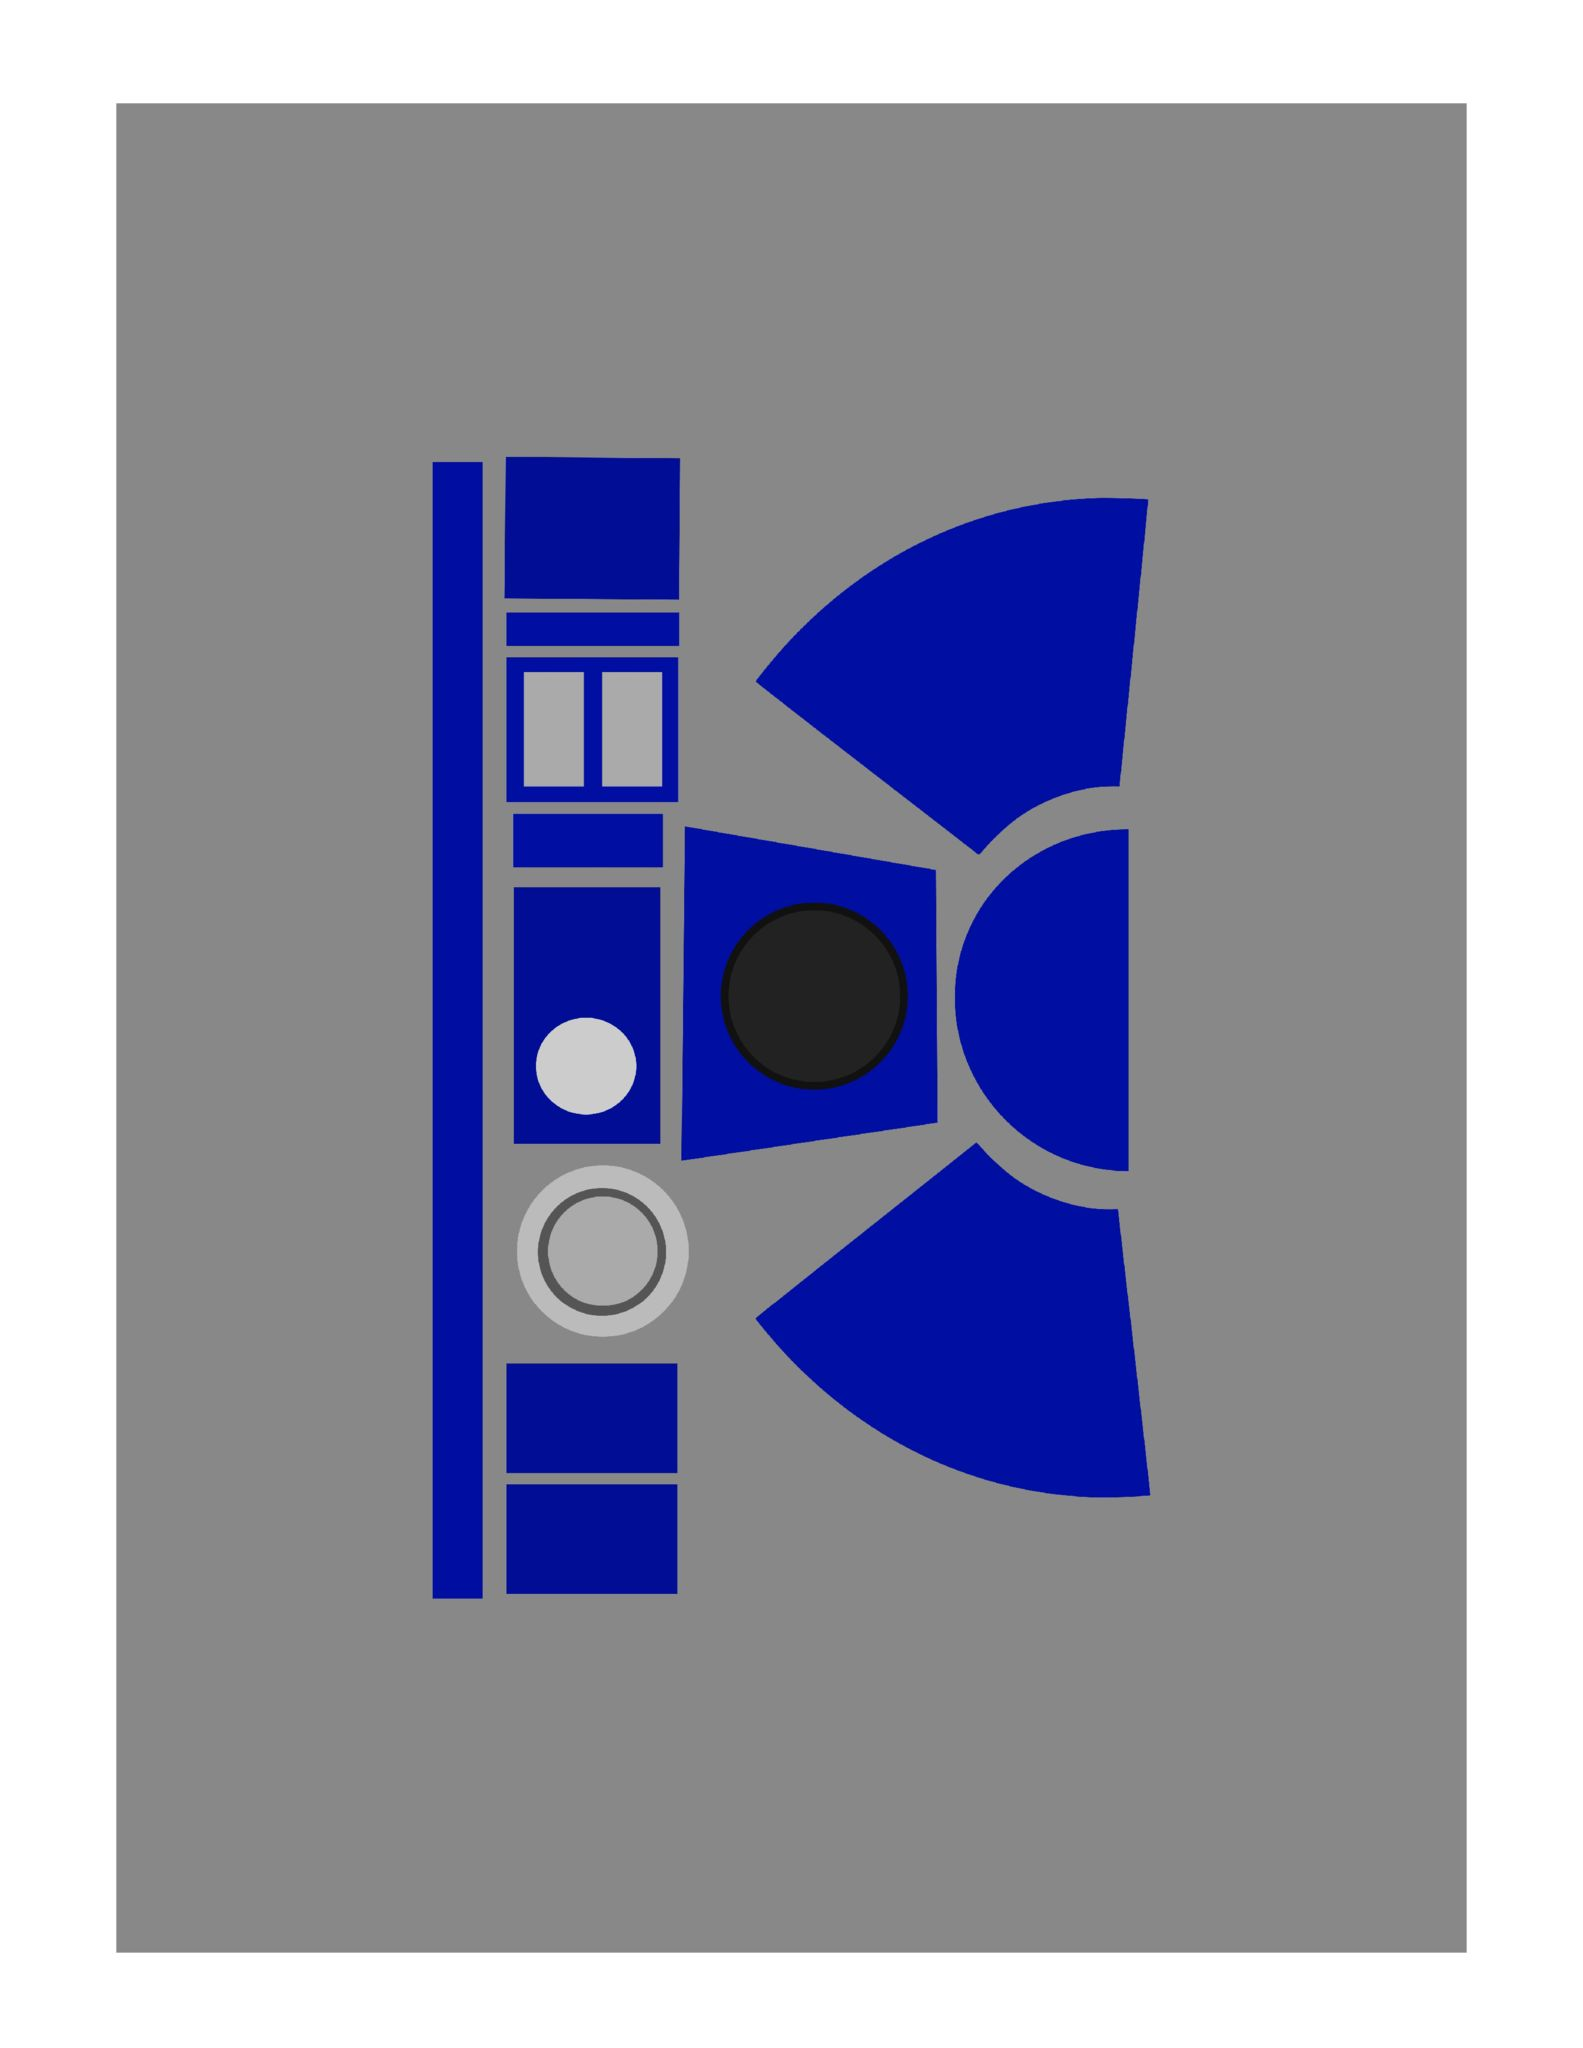 photograph about R2d2 Printable named R2D2 Valentine Box Printable - South Lumina Design